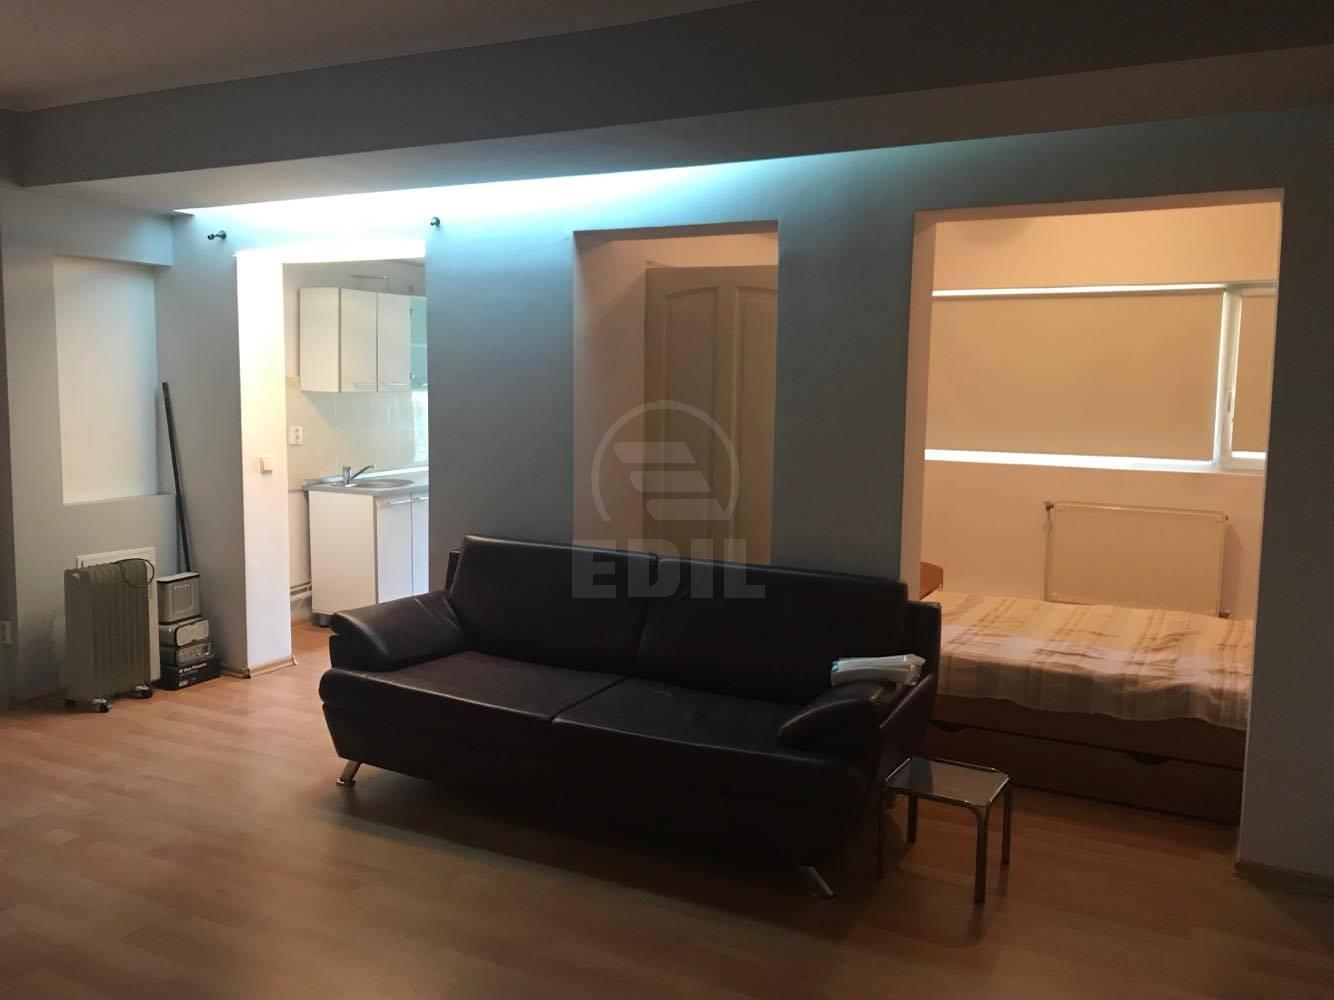 Commercial space for rent 3 rooms, SCCJ282142-2